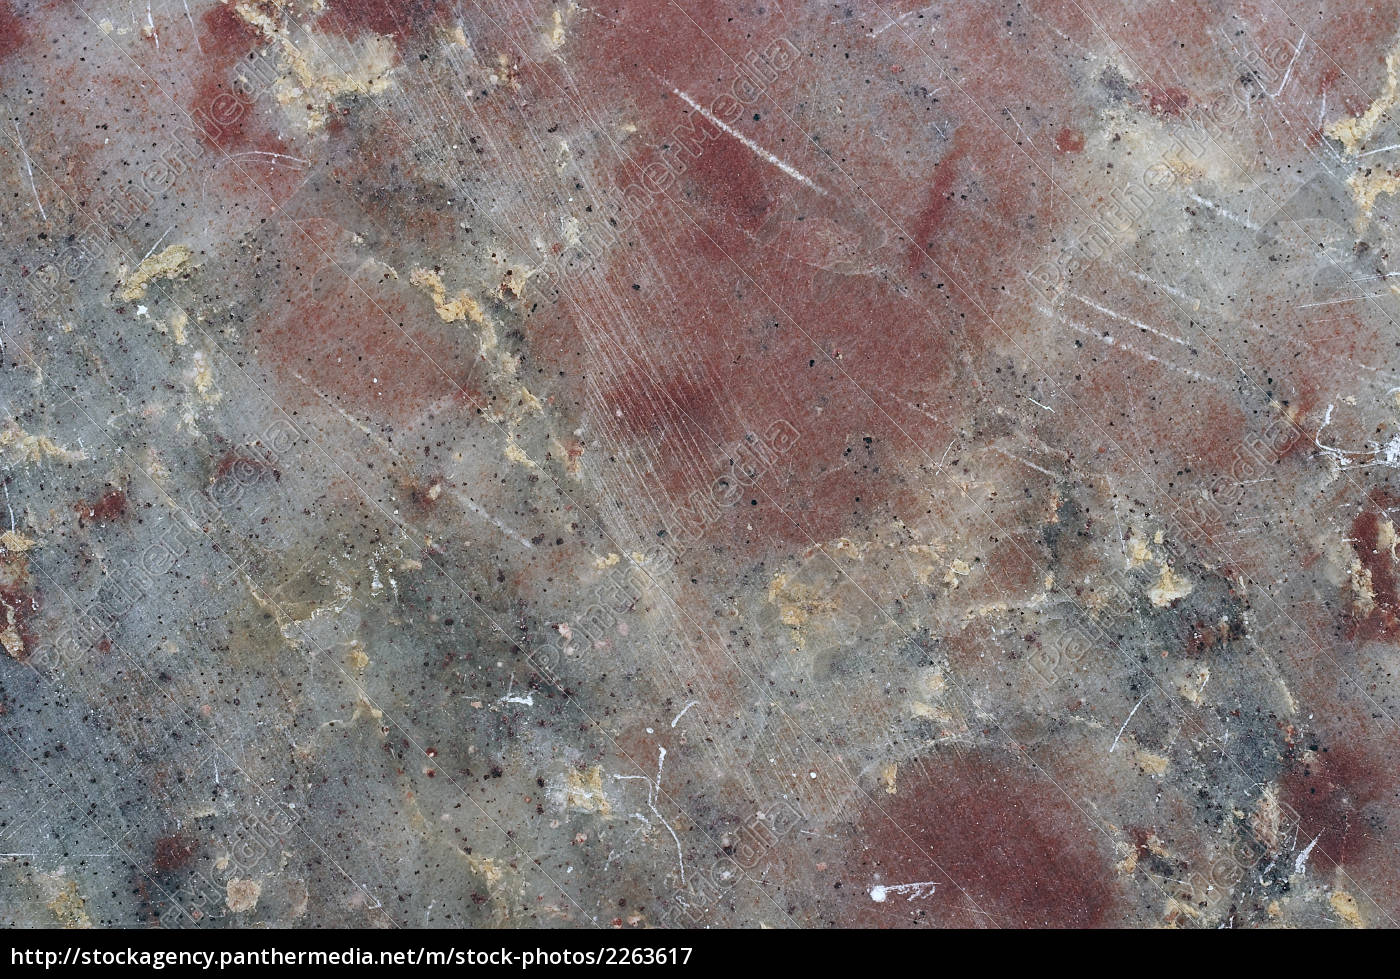 marble, slap, close-up - 2263617